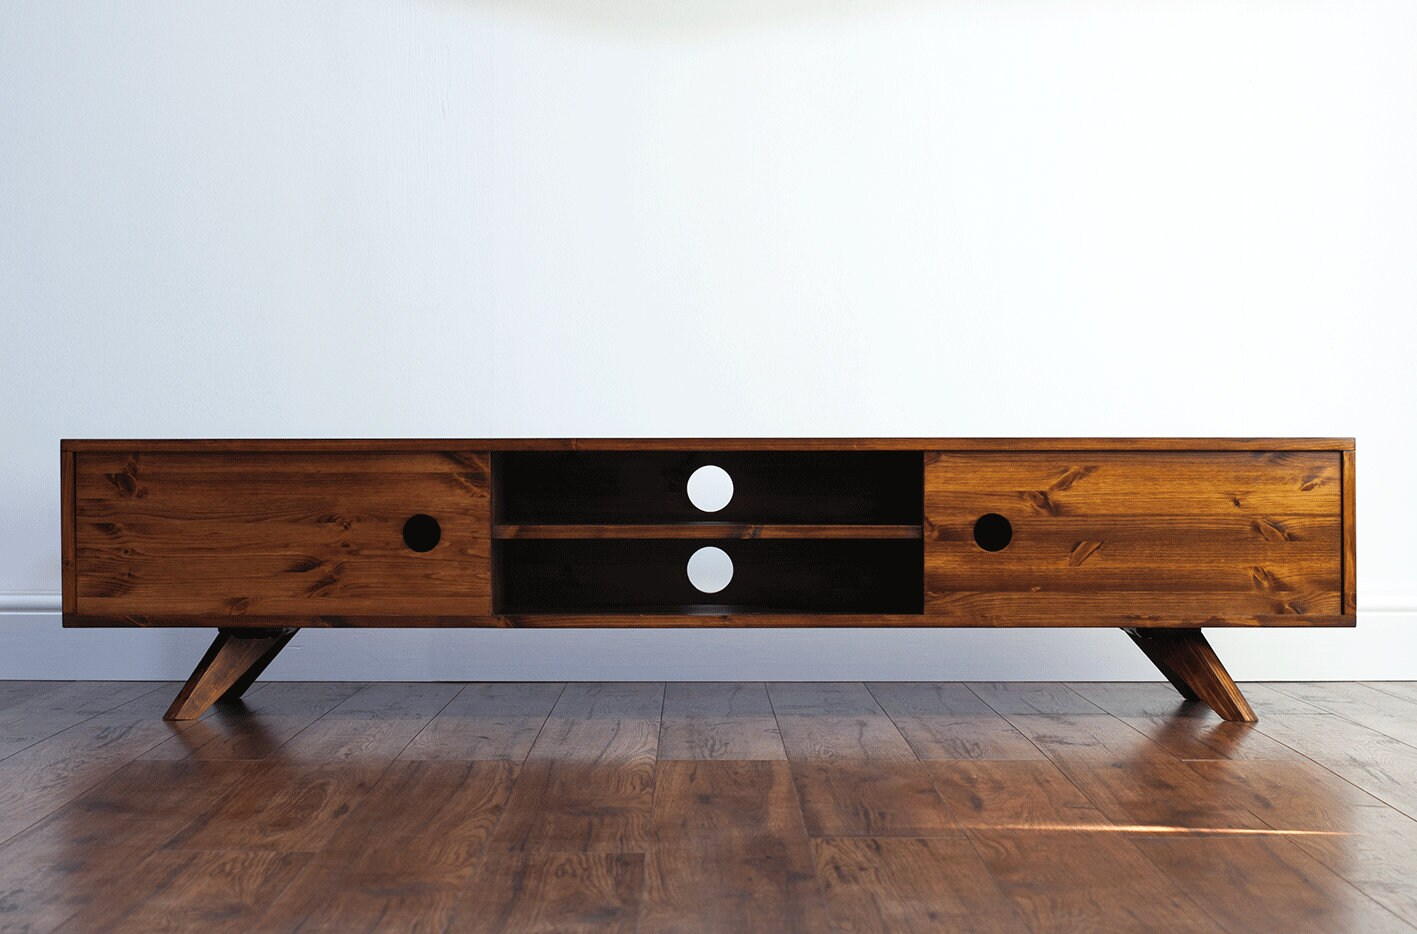 Retro Tv Cabinet 180cm Vintage Retro Tv Stand Cabinet Entertainment Centre Media Console Solid Wood Rustic Lowboard